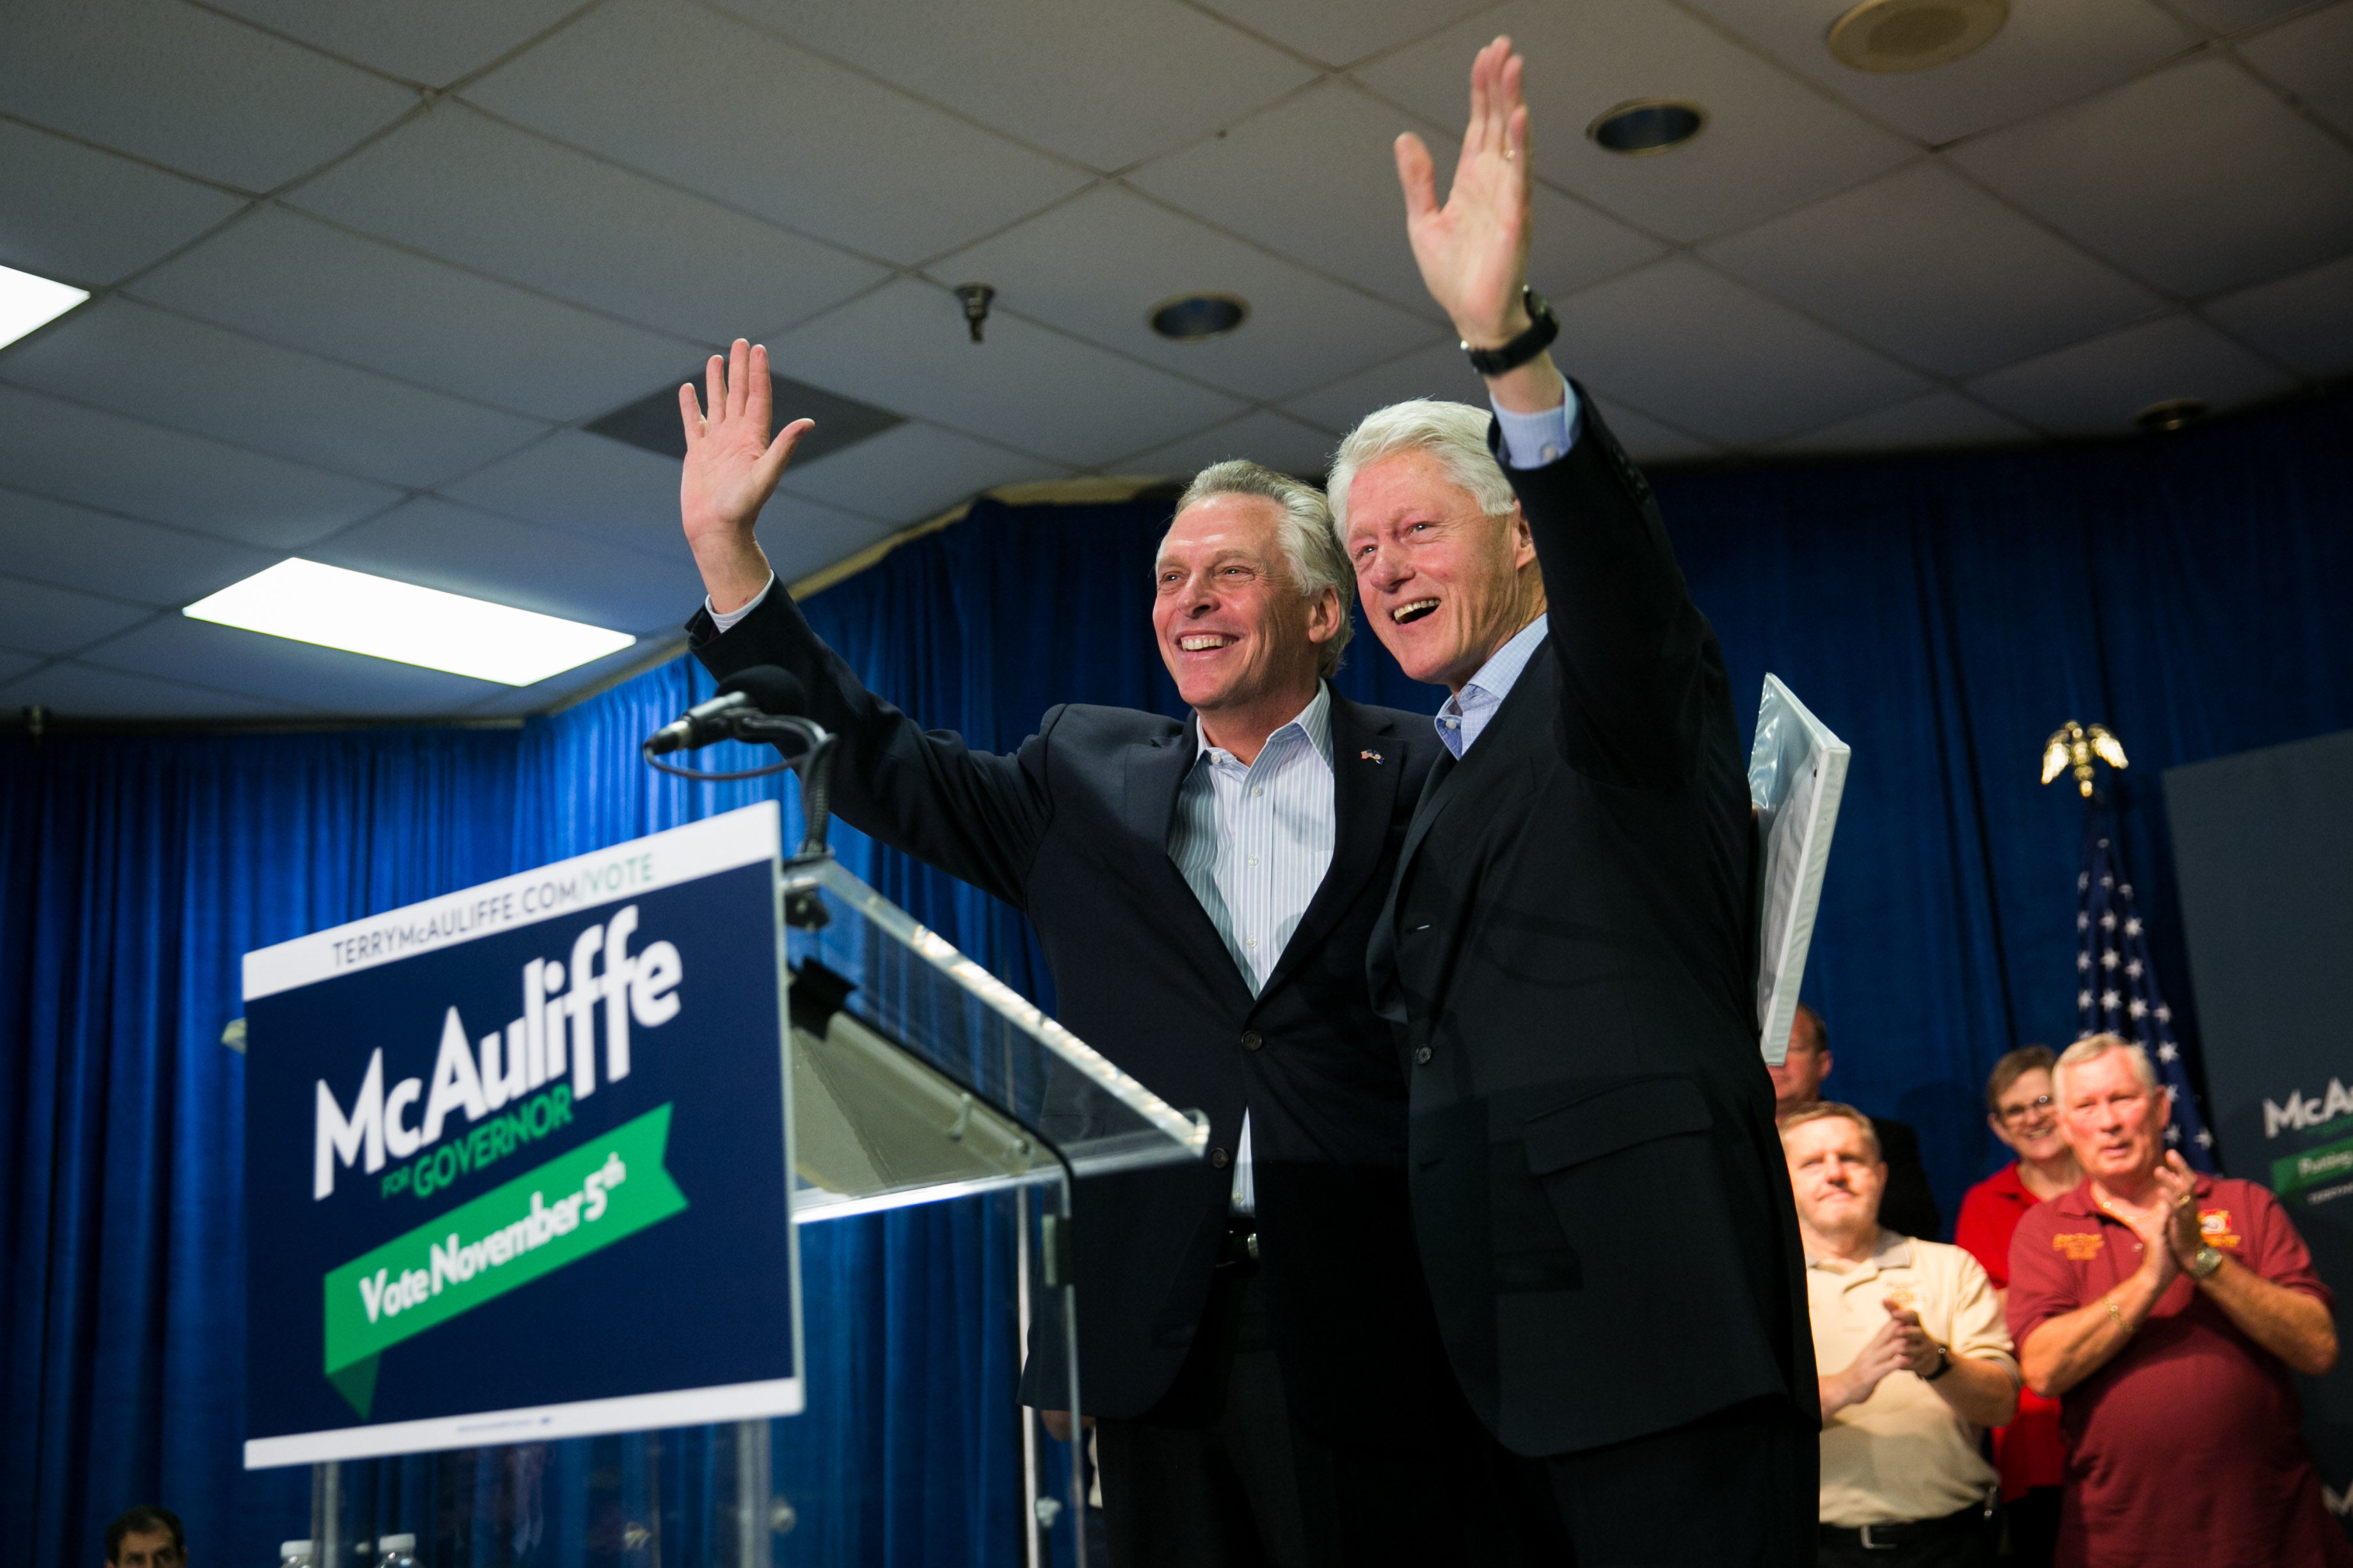 Former U.S. President Bill Clinton, R, and Virginia gubernatorial candidate Terry McAuliffe (D) wave to the crowd during a campaign event for McAuliffe at VFW Post 1503, October 27, 2013 in Dale City, Virginia. McAuliffe is in a closely contested race with Republican candidate Ken Cuccinelli. (Drew Angerer/Getty Images)